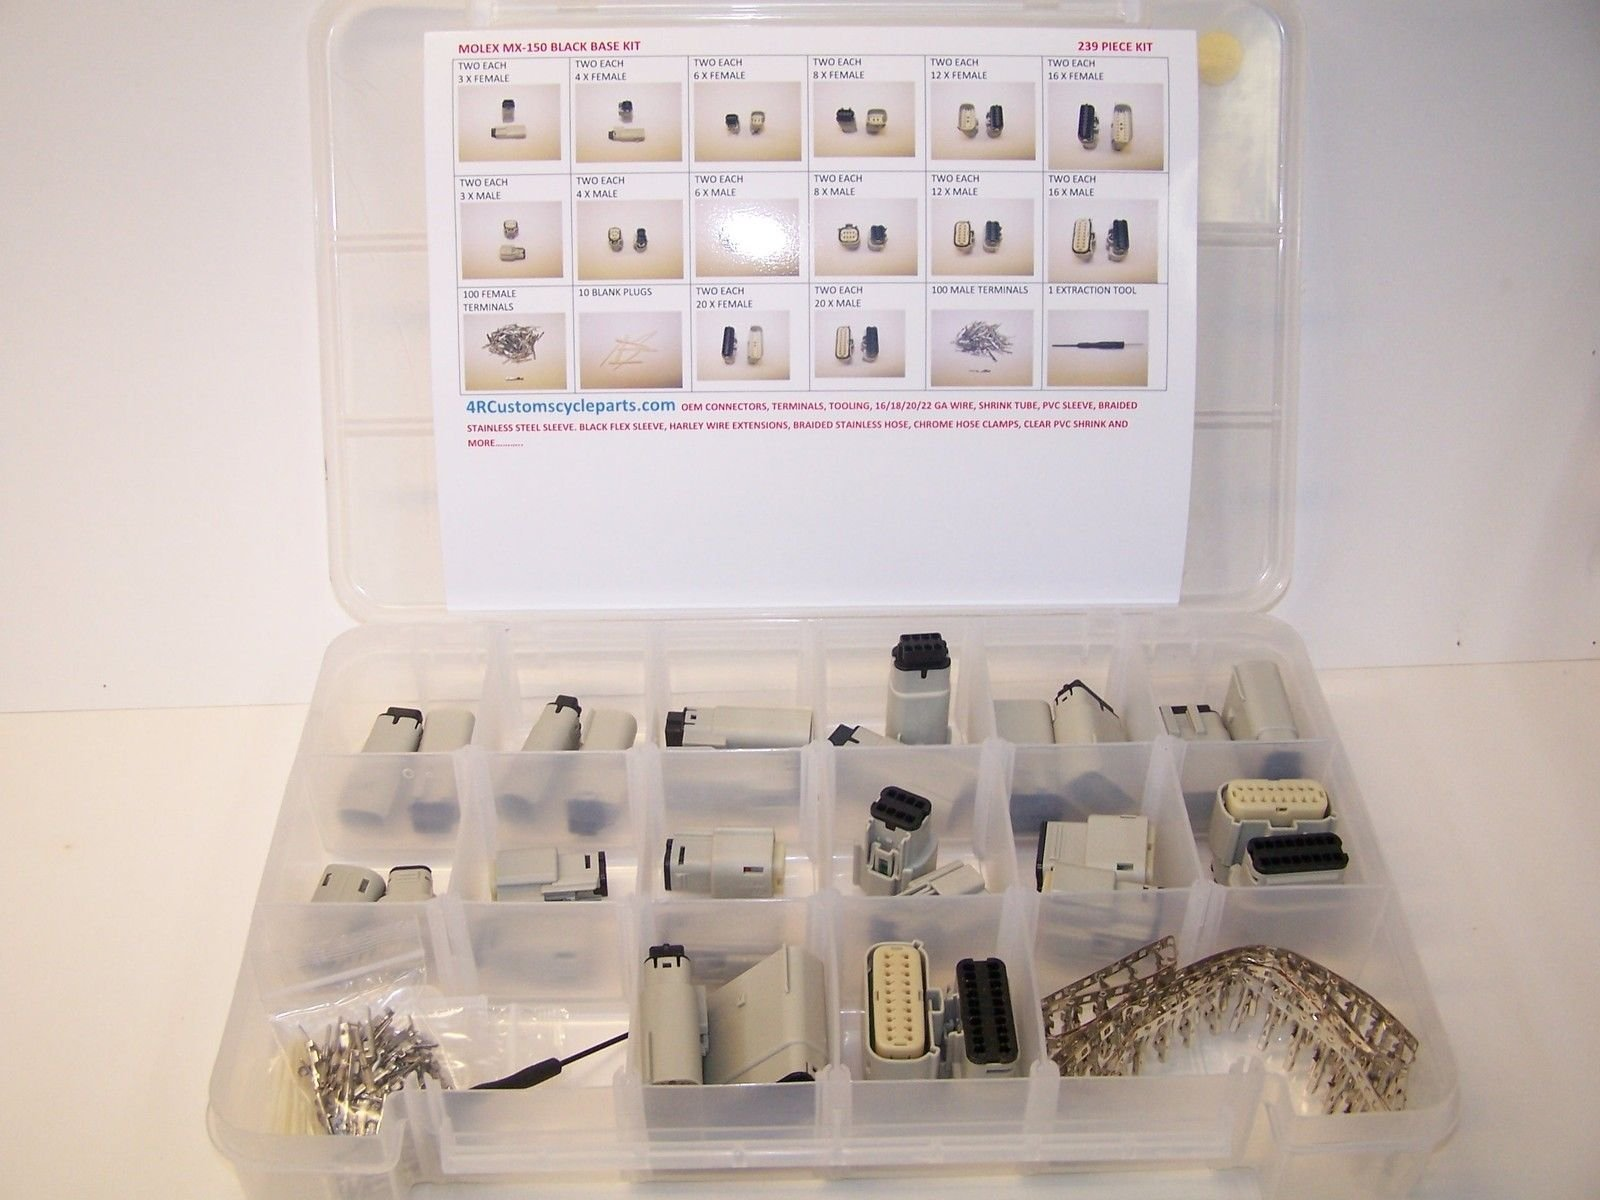 Molex Gray Connectors, 239 Piece Kit, Stamped Terminals, Pic Tool, 3X to 20X, Wiring Switch, Wire 07-12, OEM, Harley, Auto,